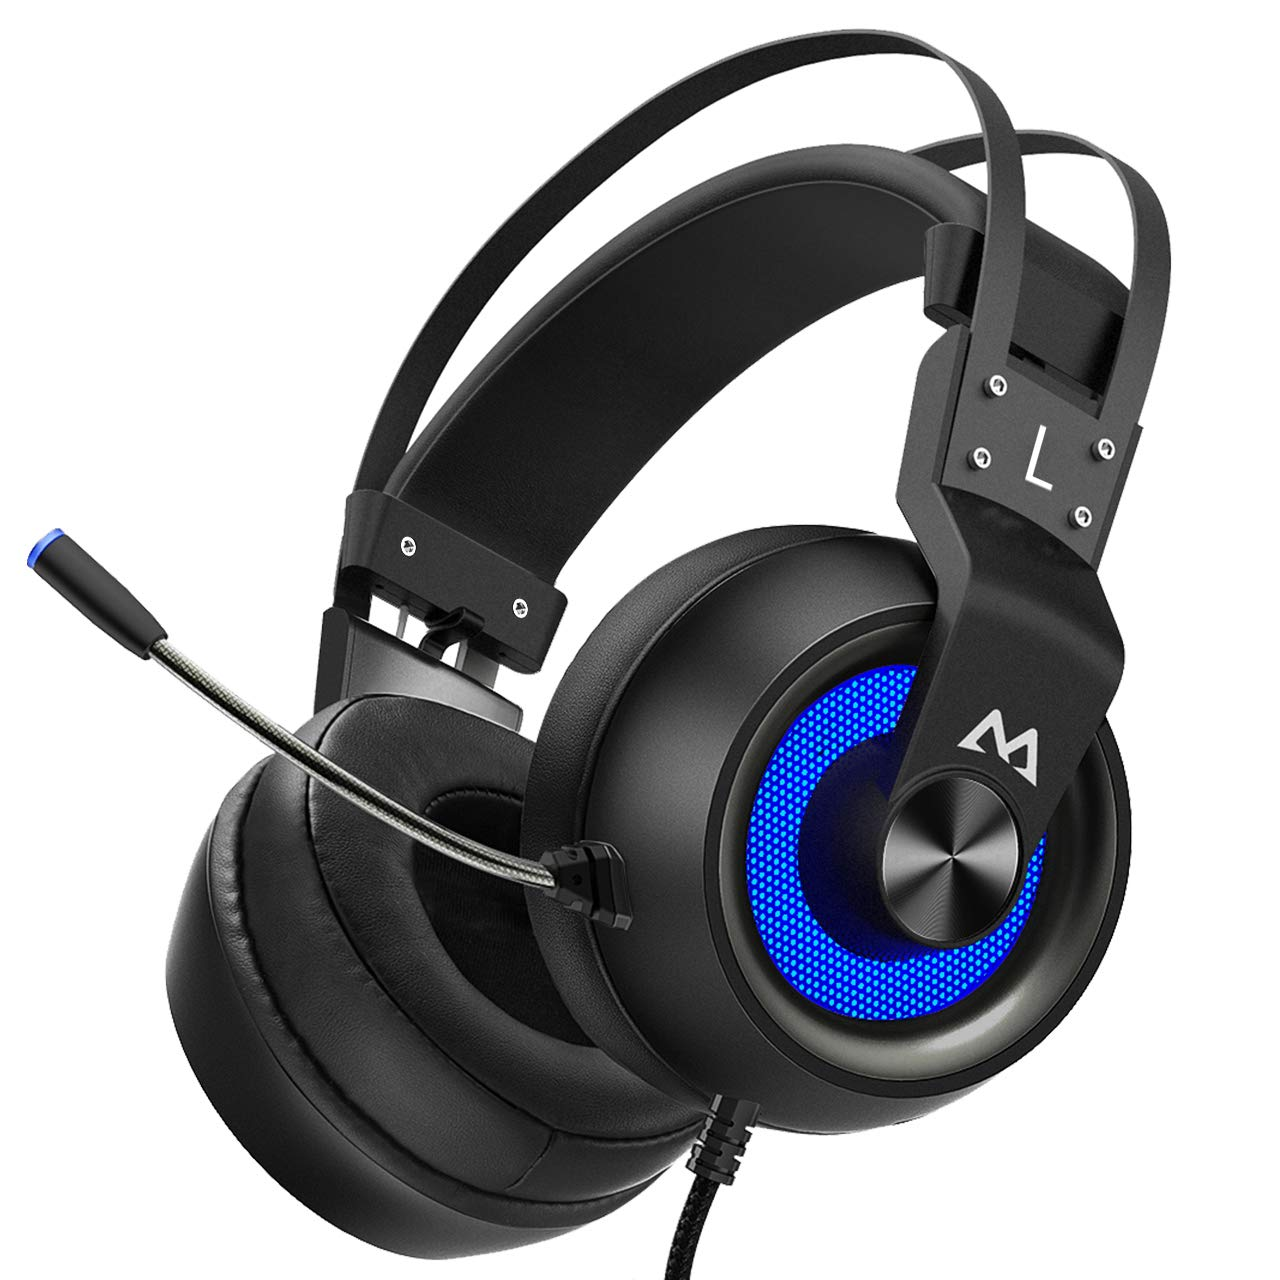 Mpow Pro Gaming Headset (2019 All-Platform Edition), with Mic, 50mm Speaker Driver, 3D Surround Sound, in-Line Control, LED Light, PC PS4 Gaming Headset, Nintendo Switch 64 3.5mm Gaming Headphones by Mpow